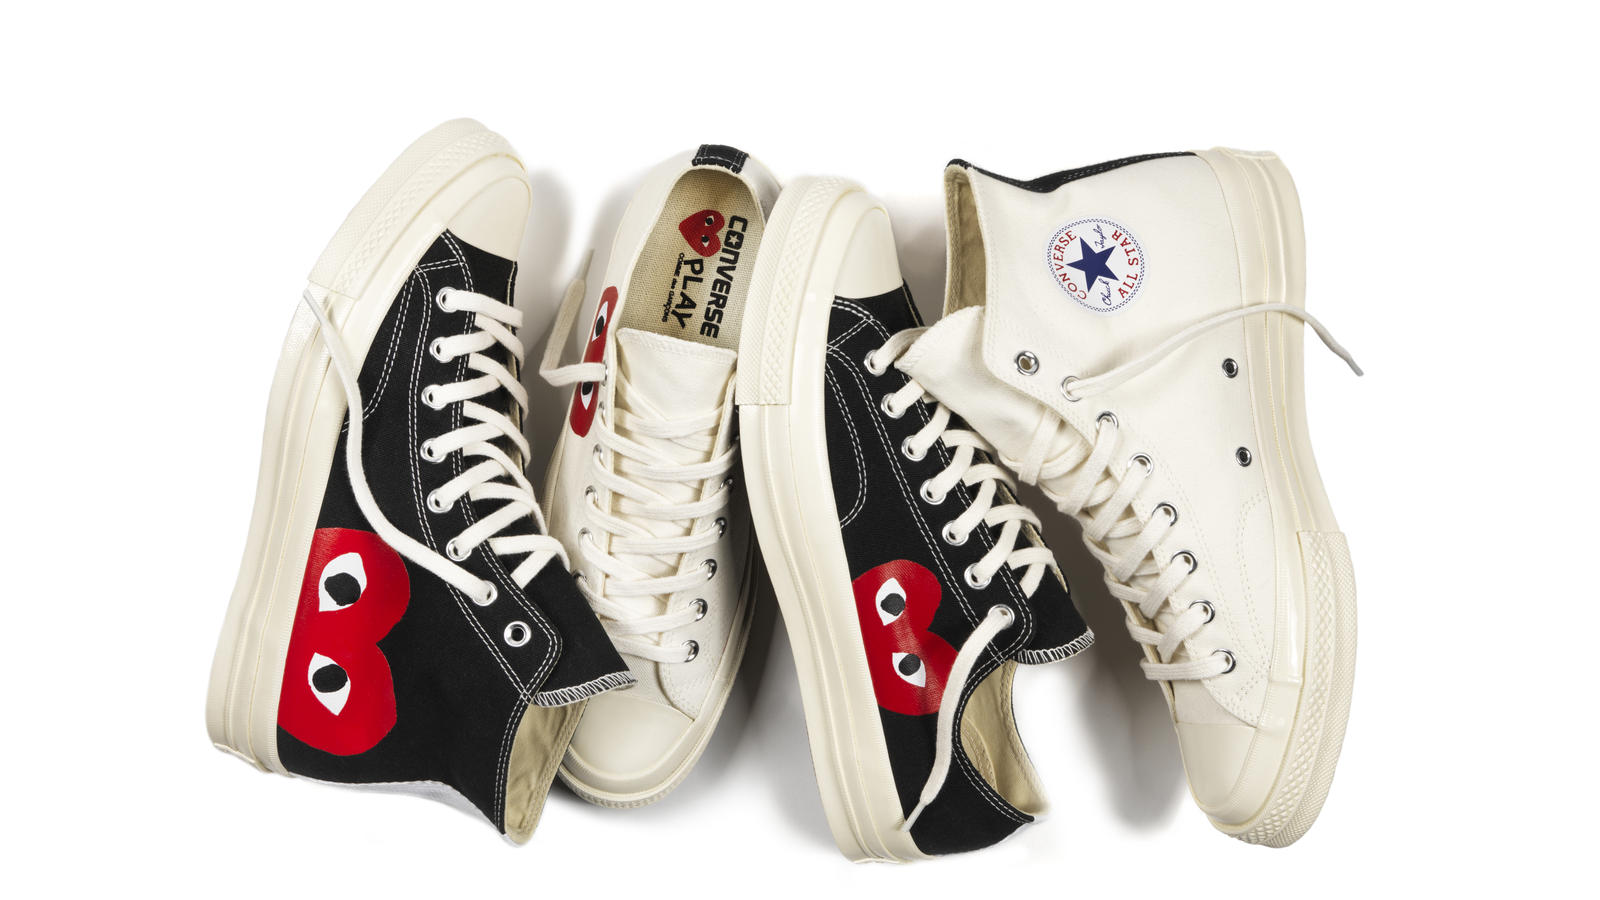 CONVERSE AND COMME DES GARCONS ANNOUNCE NEW PLAY COLLABORATION